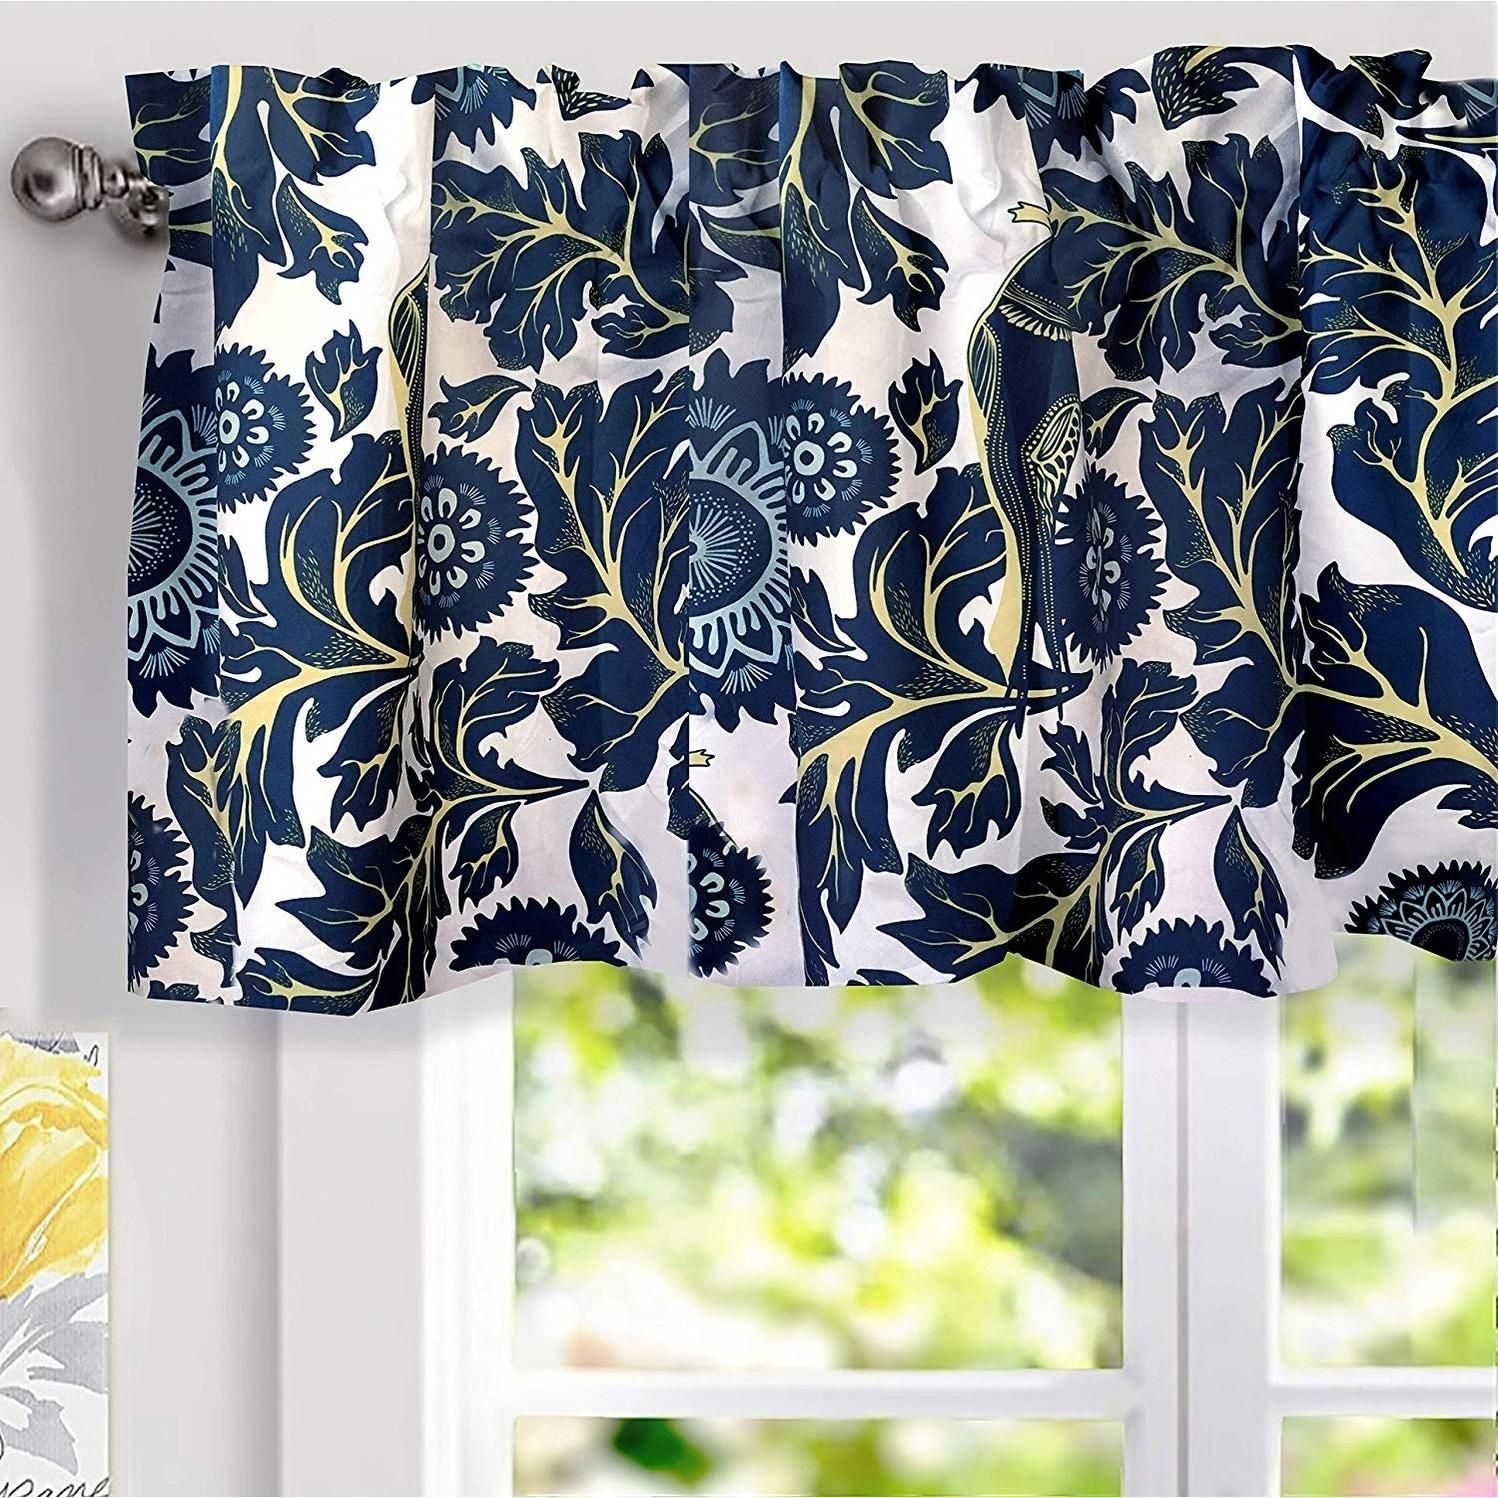 Porch Den Alexis Floral Thermal Insulated Window Valance Navy Blue 100 Polyester Roomdarkeningcurtains Valances For Living Room Valance Window Valance